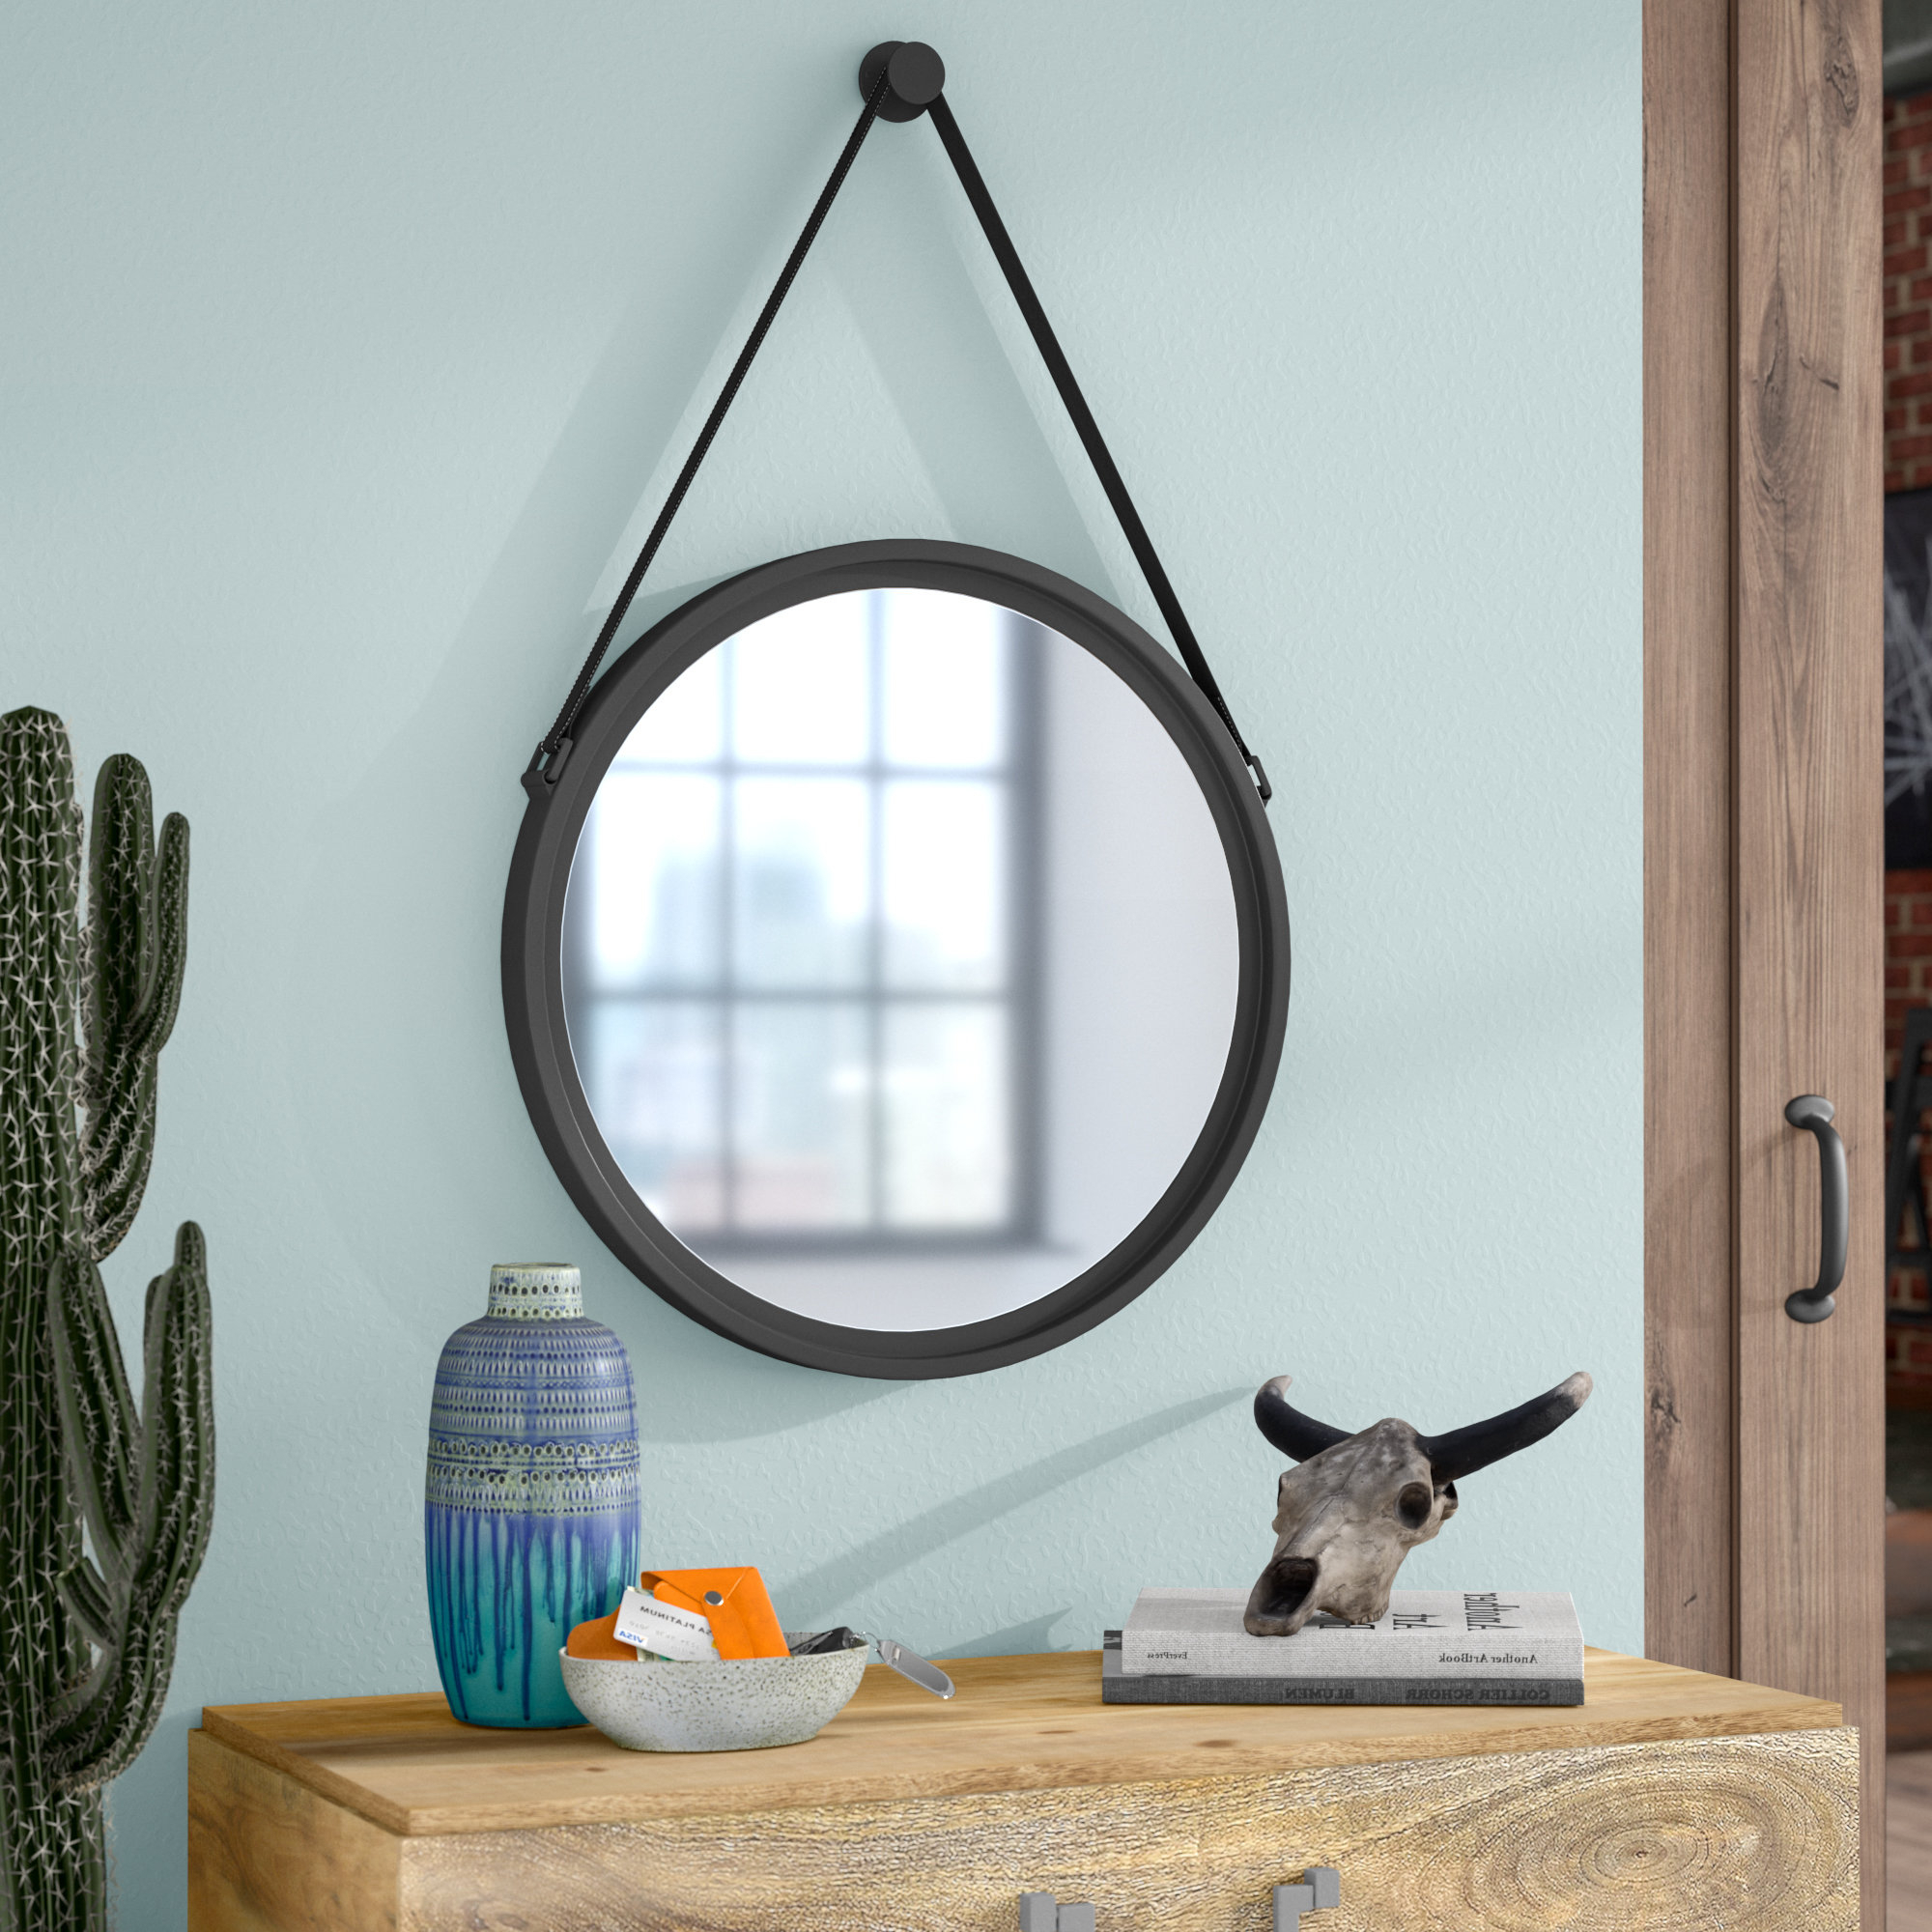 Preferred Round Galvanized Metallic Wall Mirrors In Round Metal Wall Mirror (View 18 of 20)